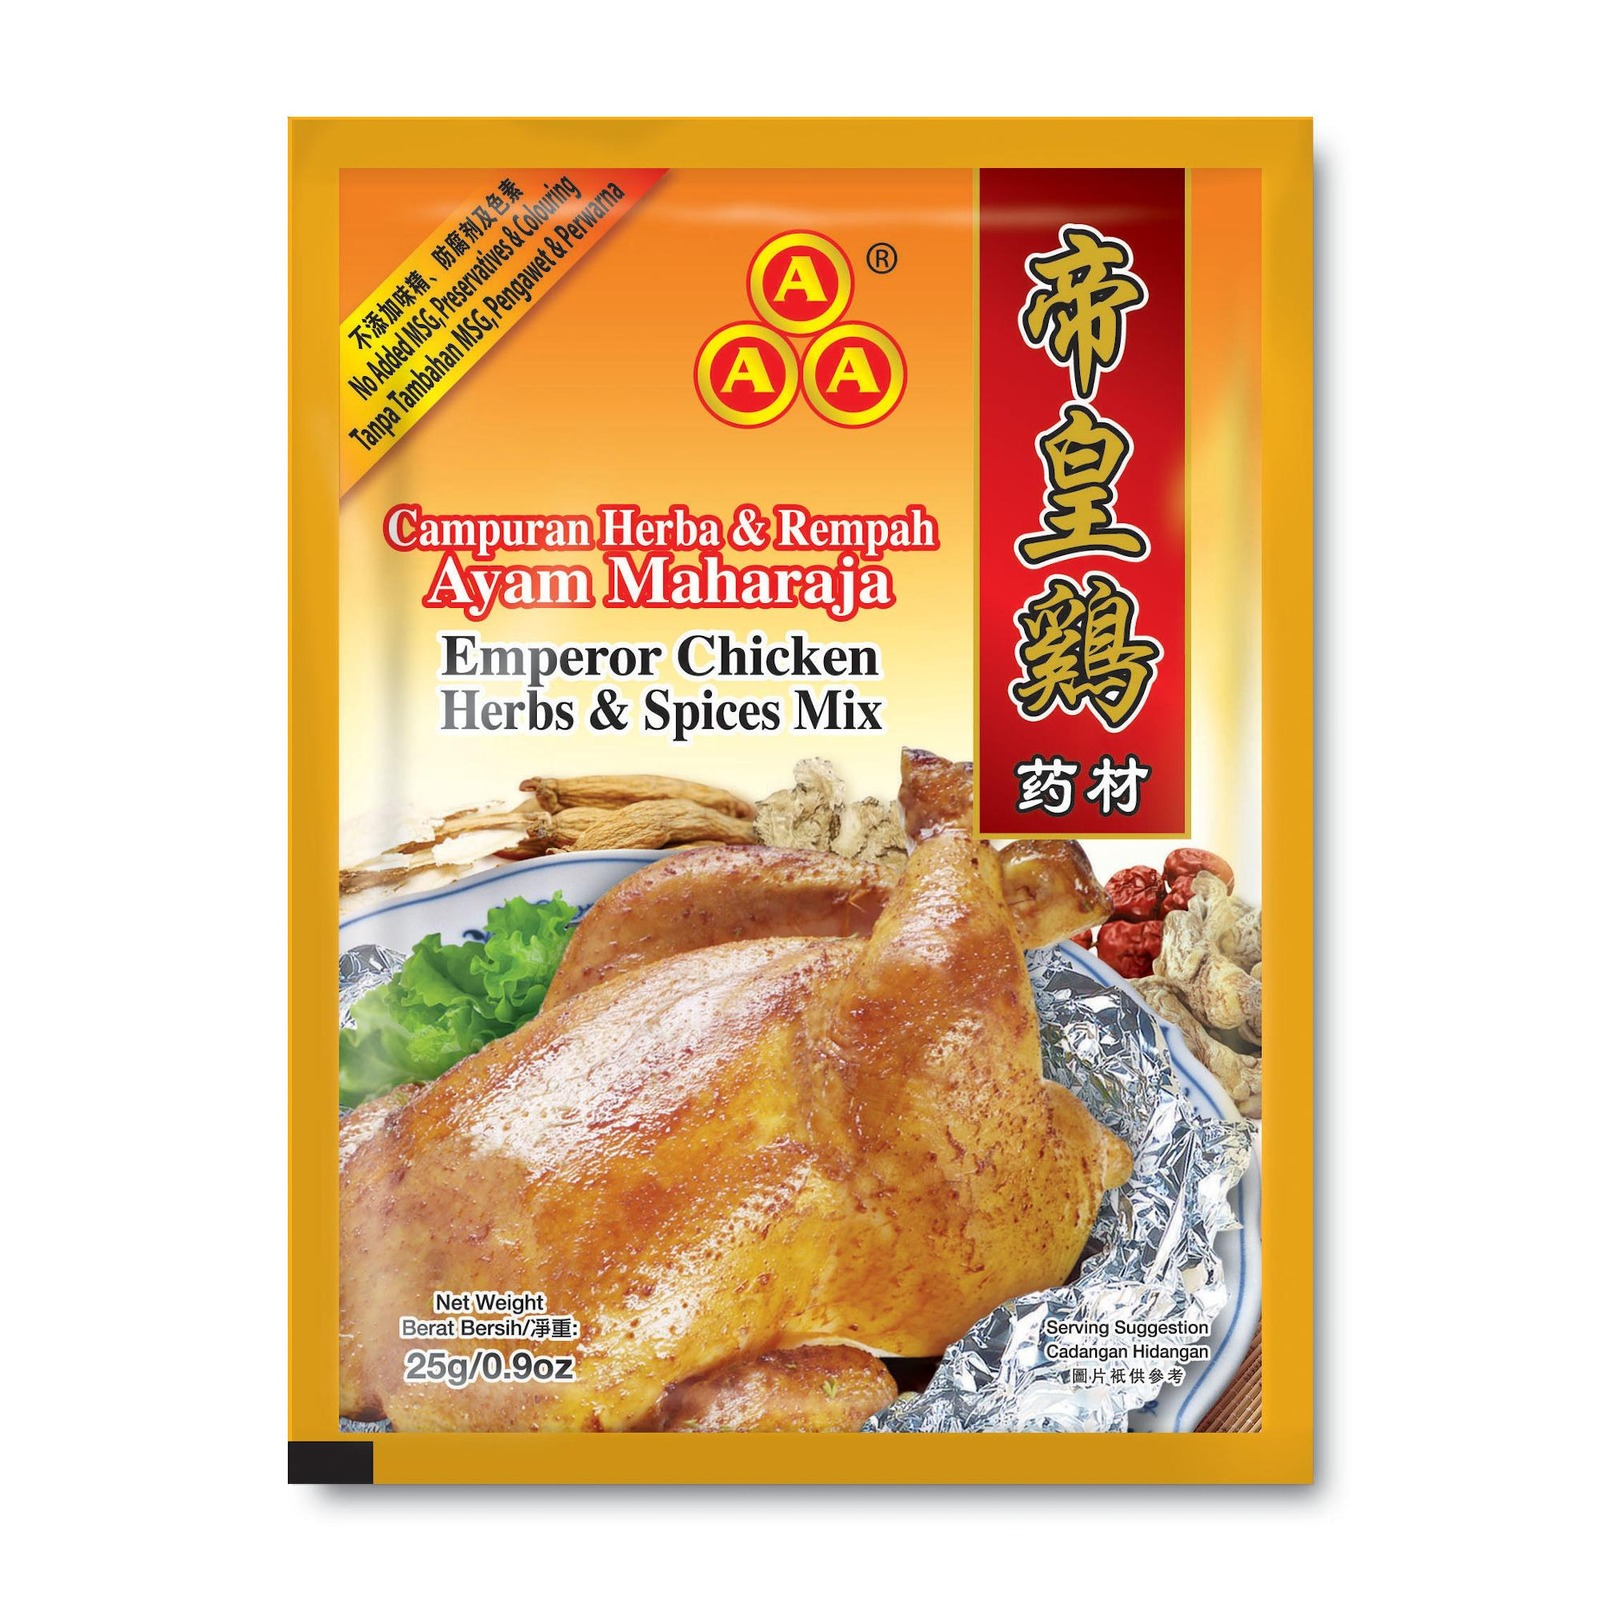 AAA EMPEROR CHICKEN HERBS & SPICES MIX